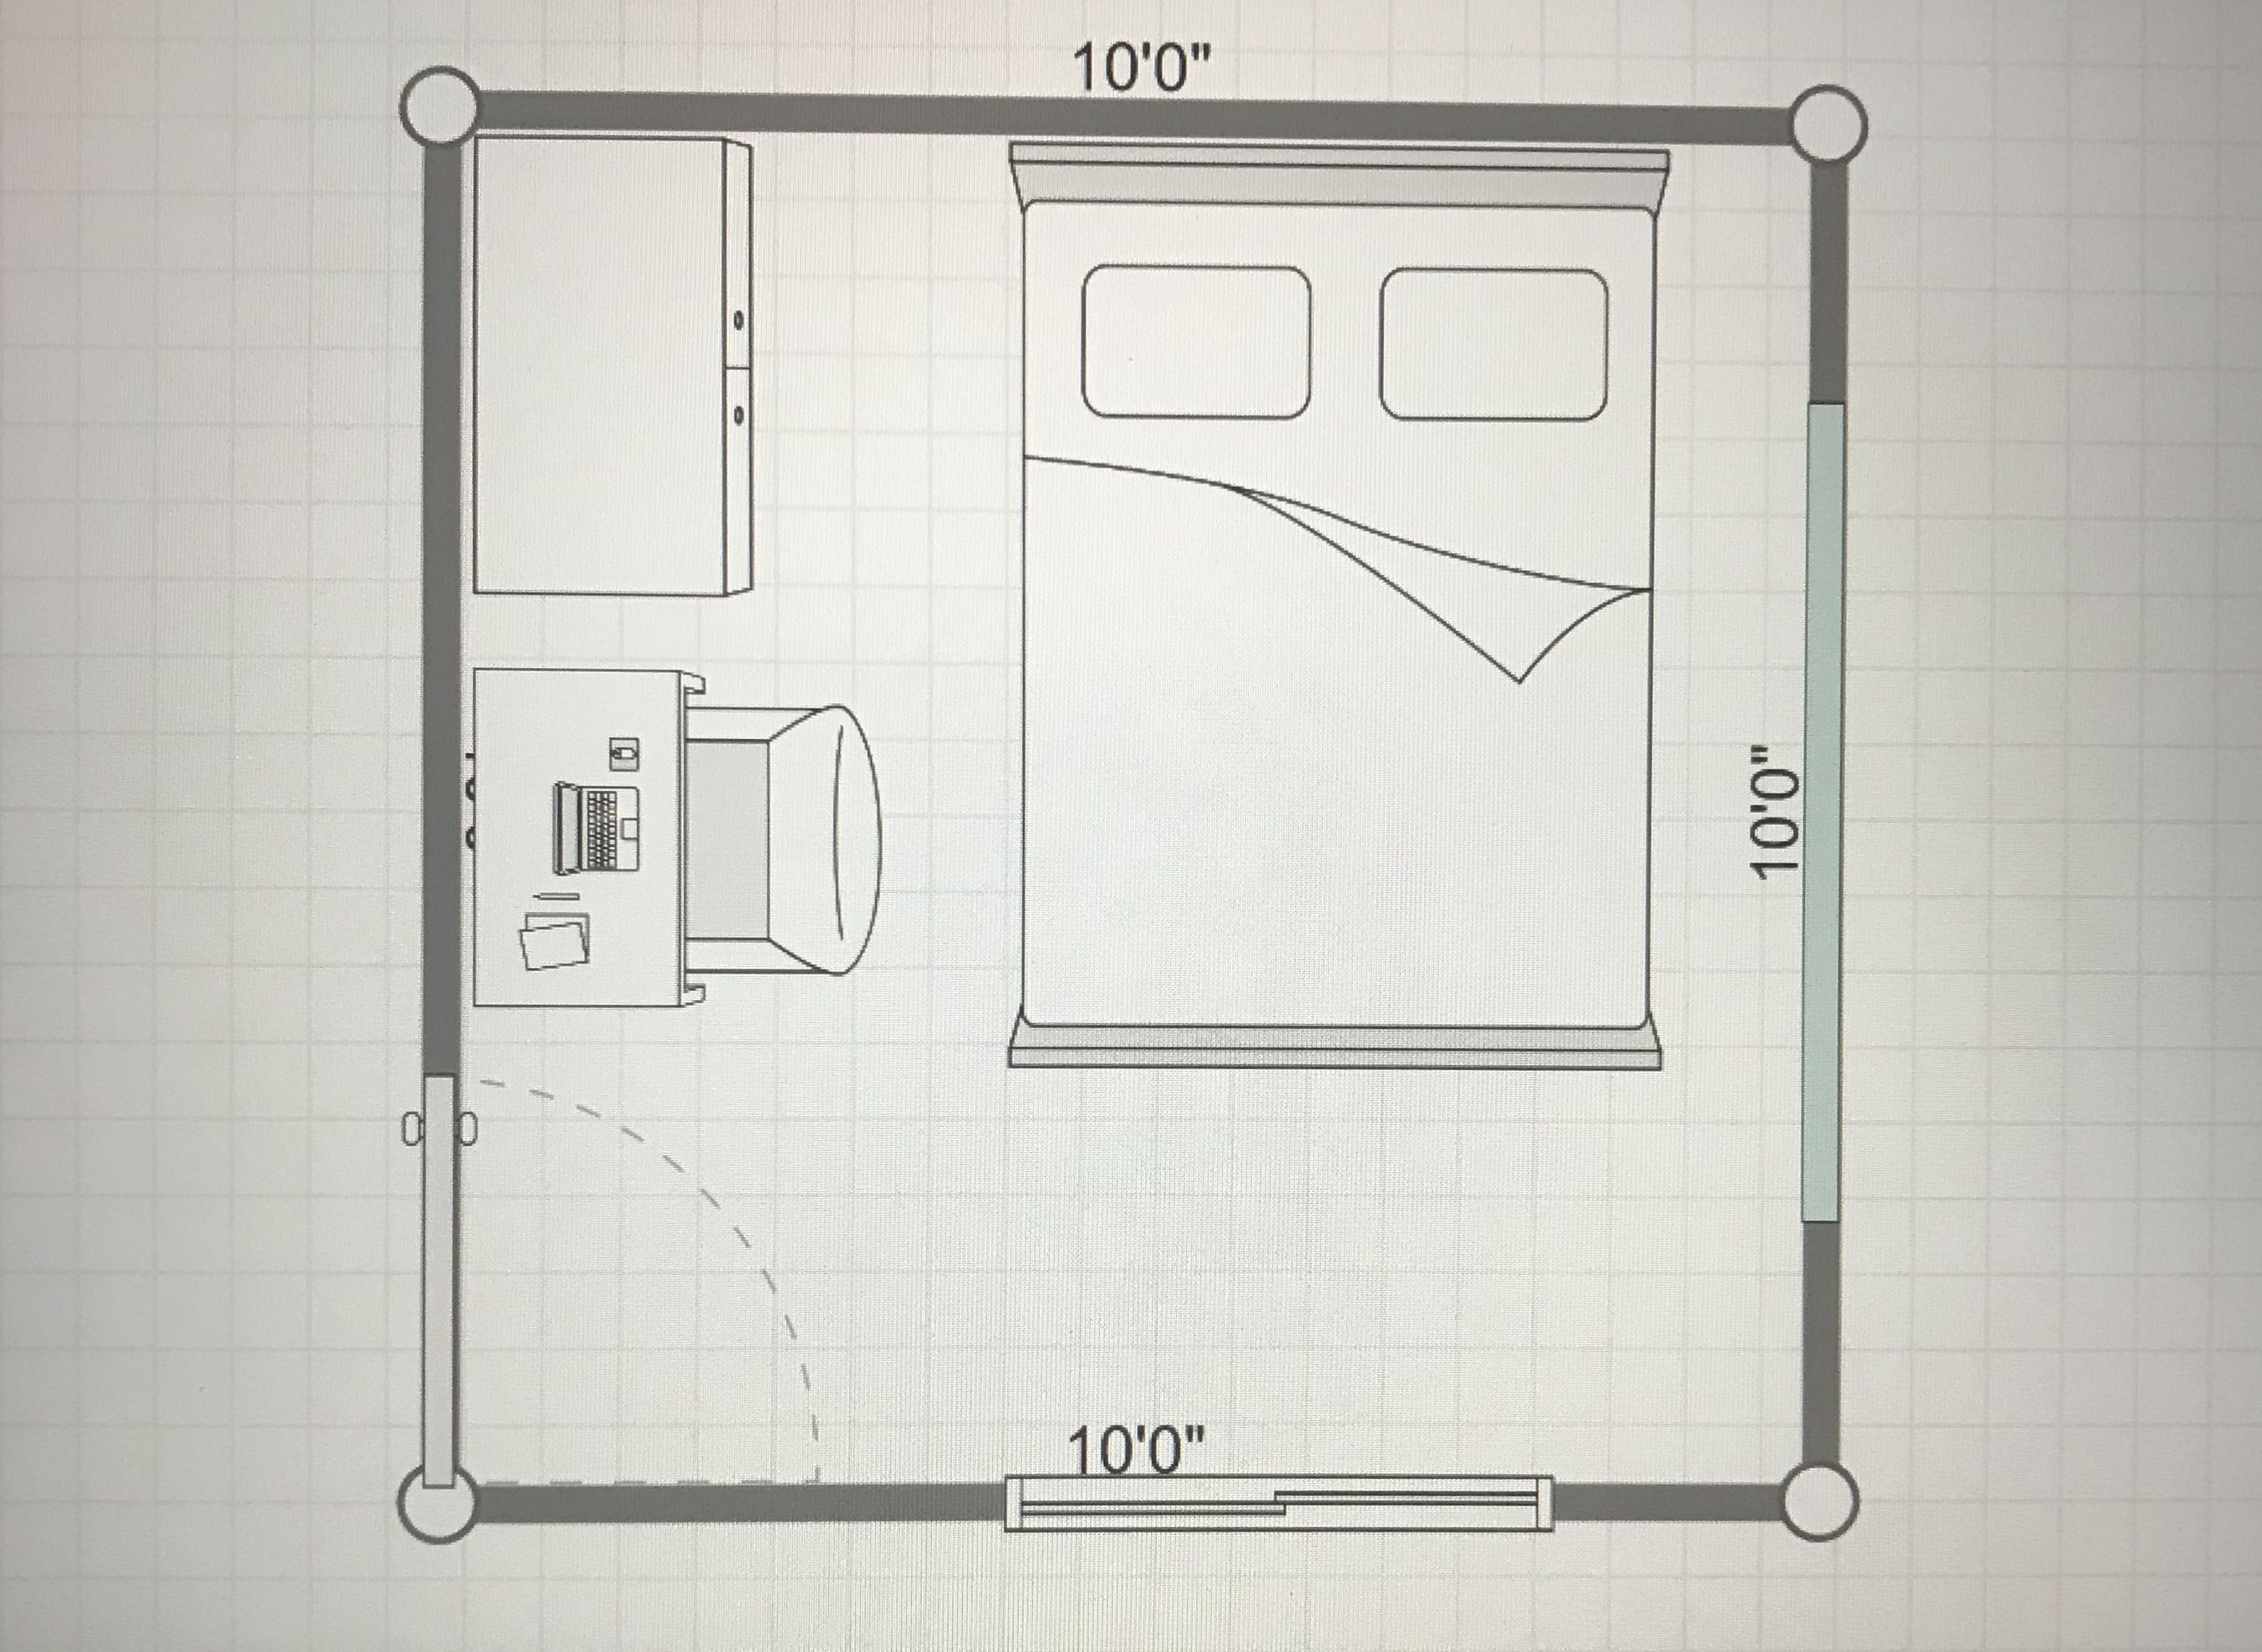 10x10 Room Small Bedroom Layout Small Boys Bedrooms Bedroom Layouts